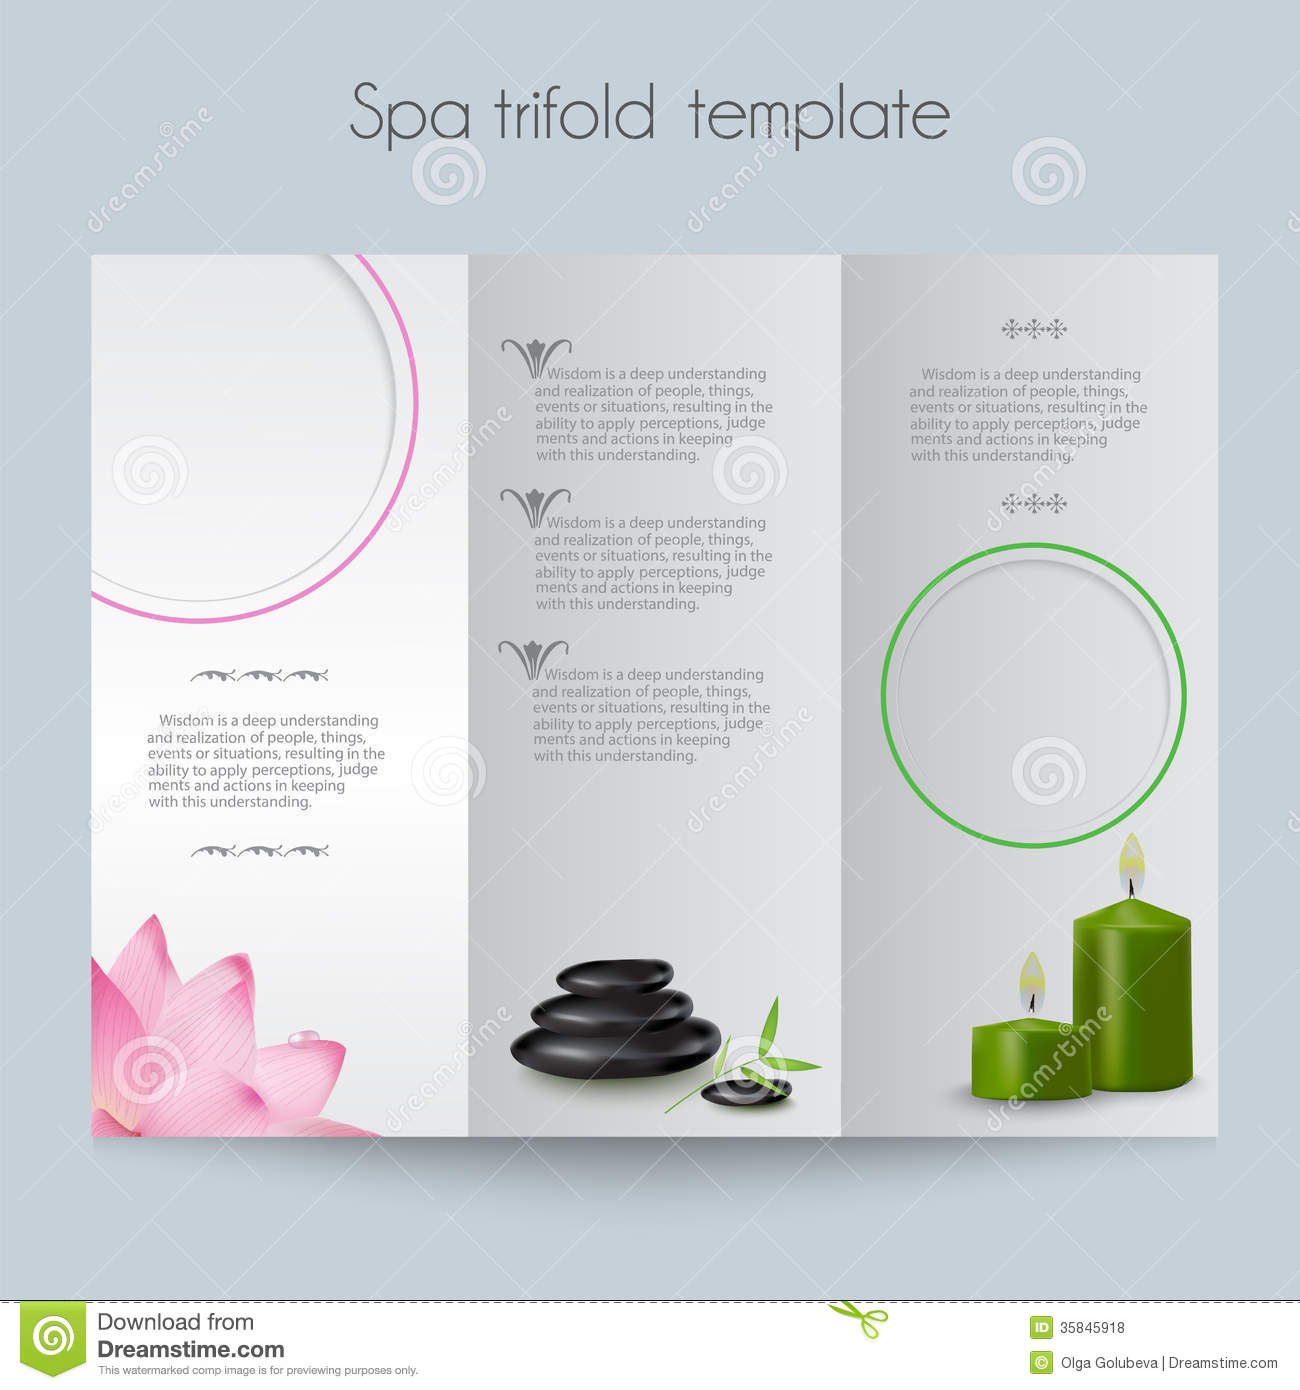 Tri fold spa brochure mock up royalty free stock photos for Booklet brochure template